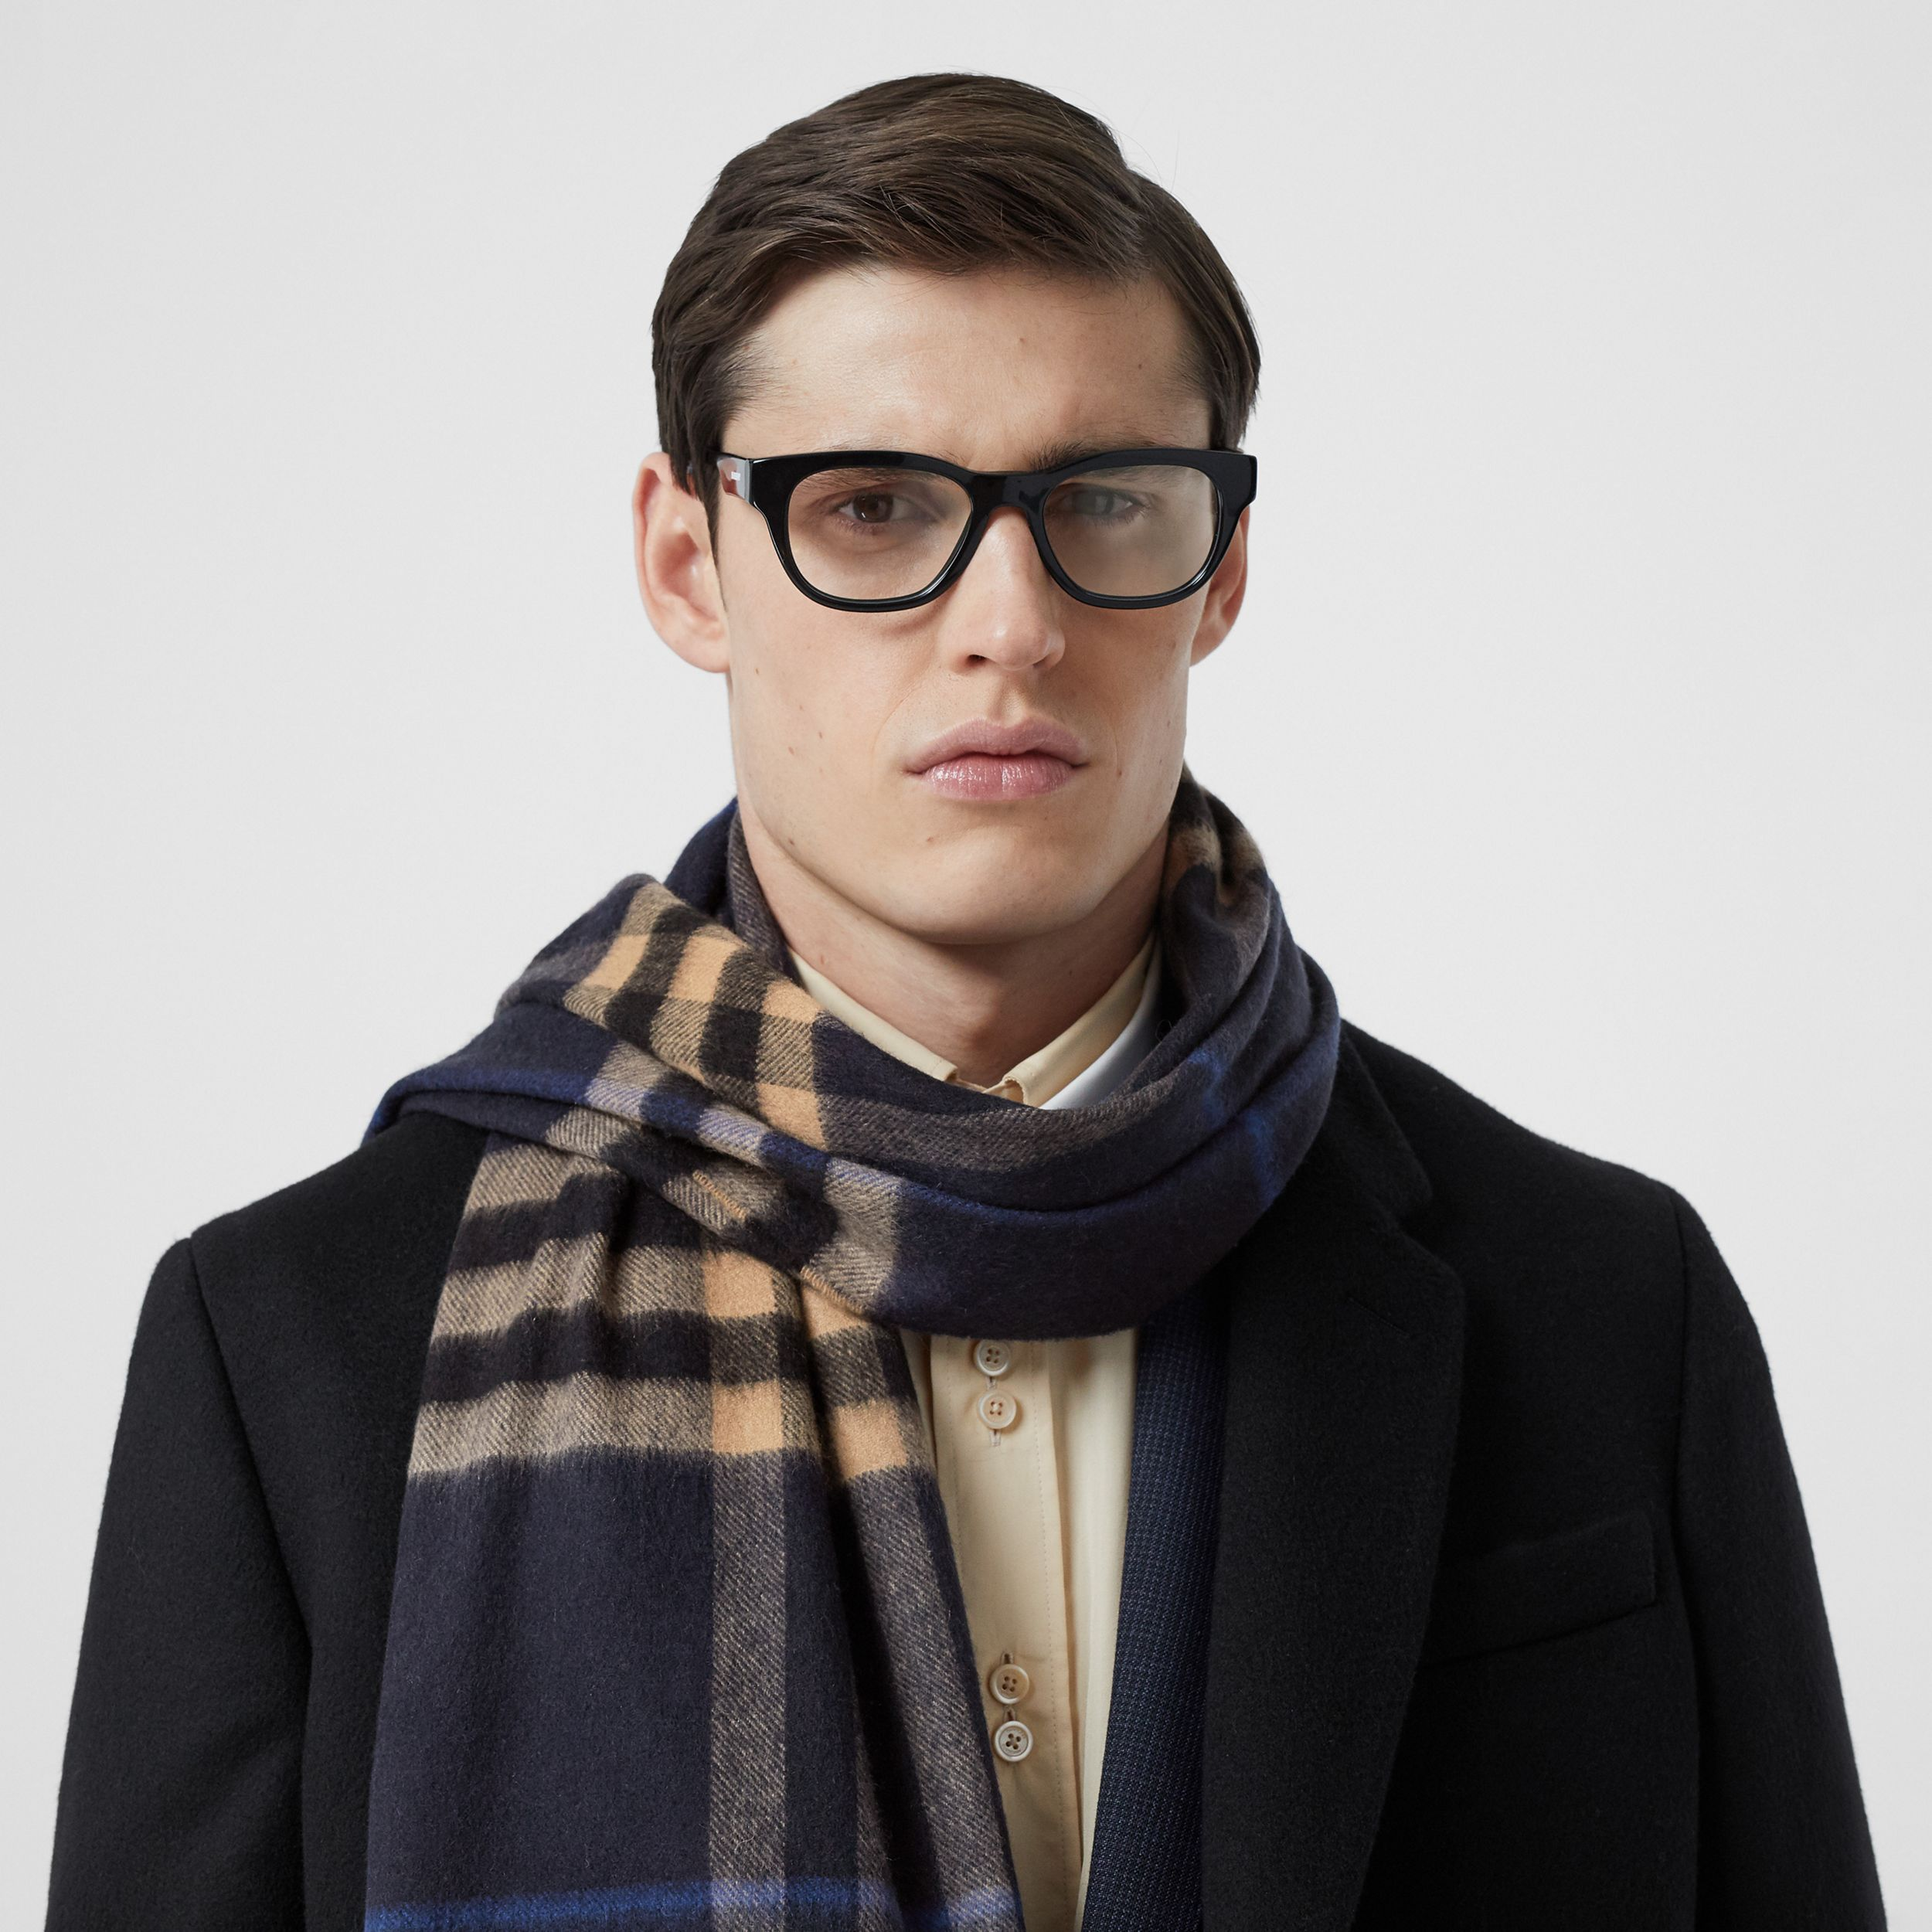 The Classic Check Cashmere Scarf in Indigo / Mid Camel | Burberry - 4